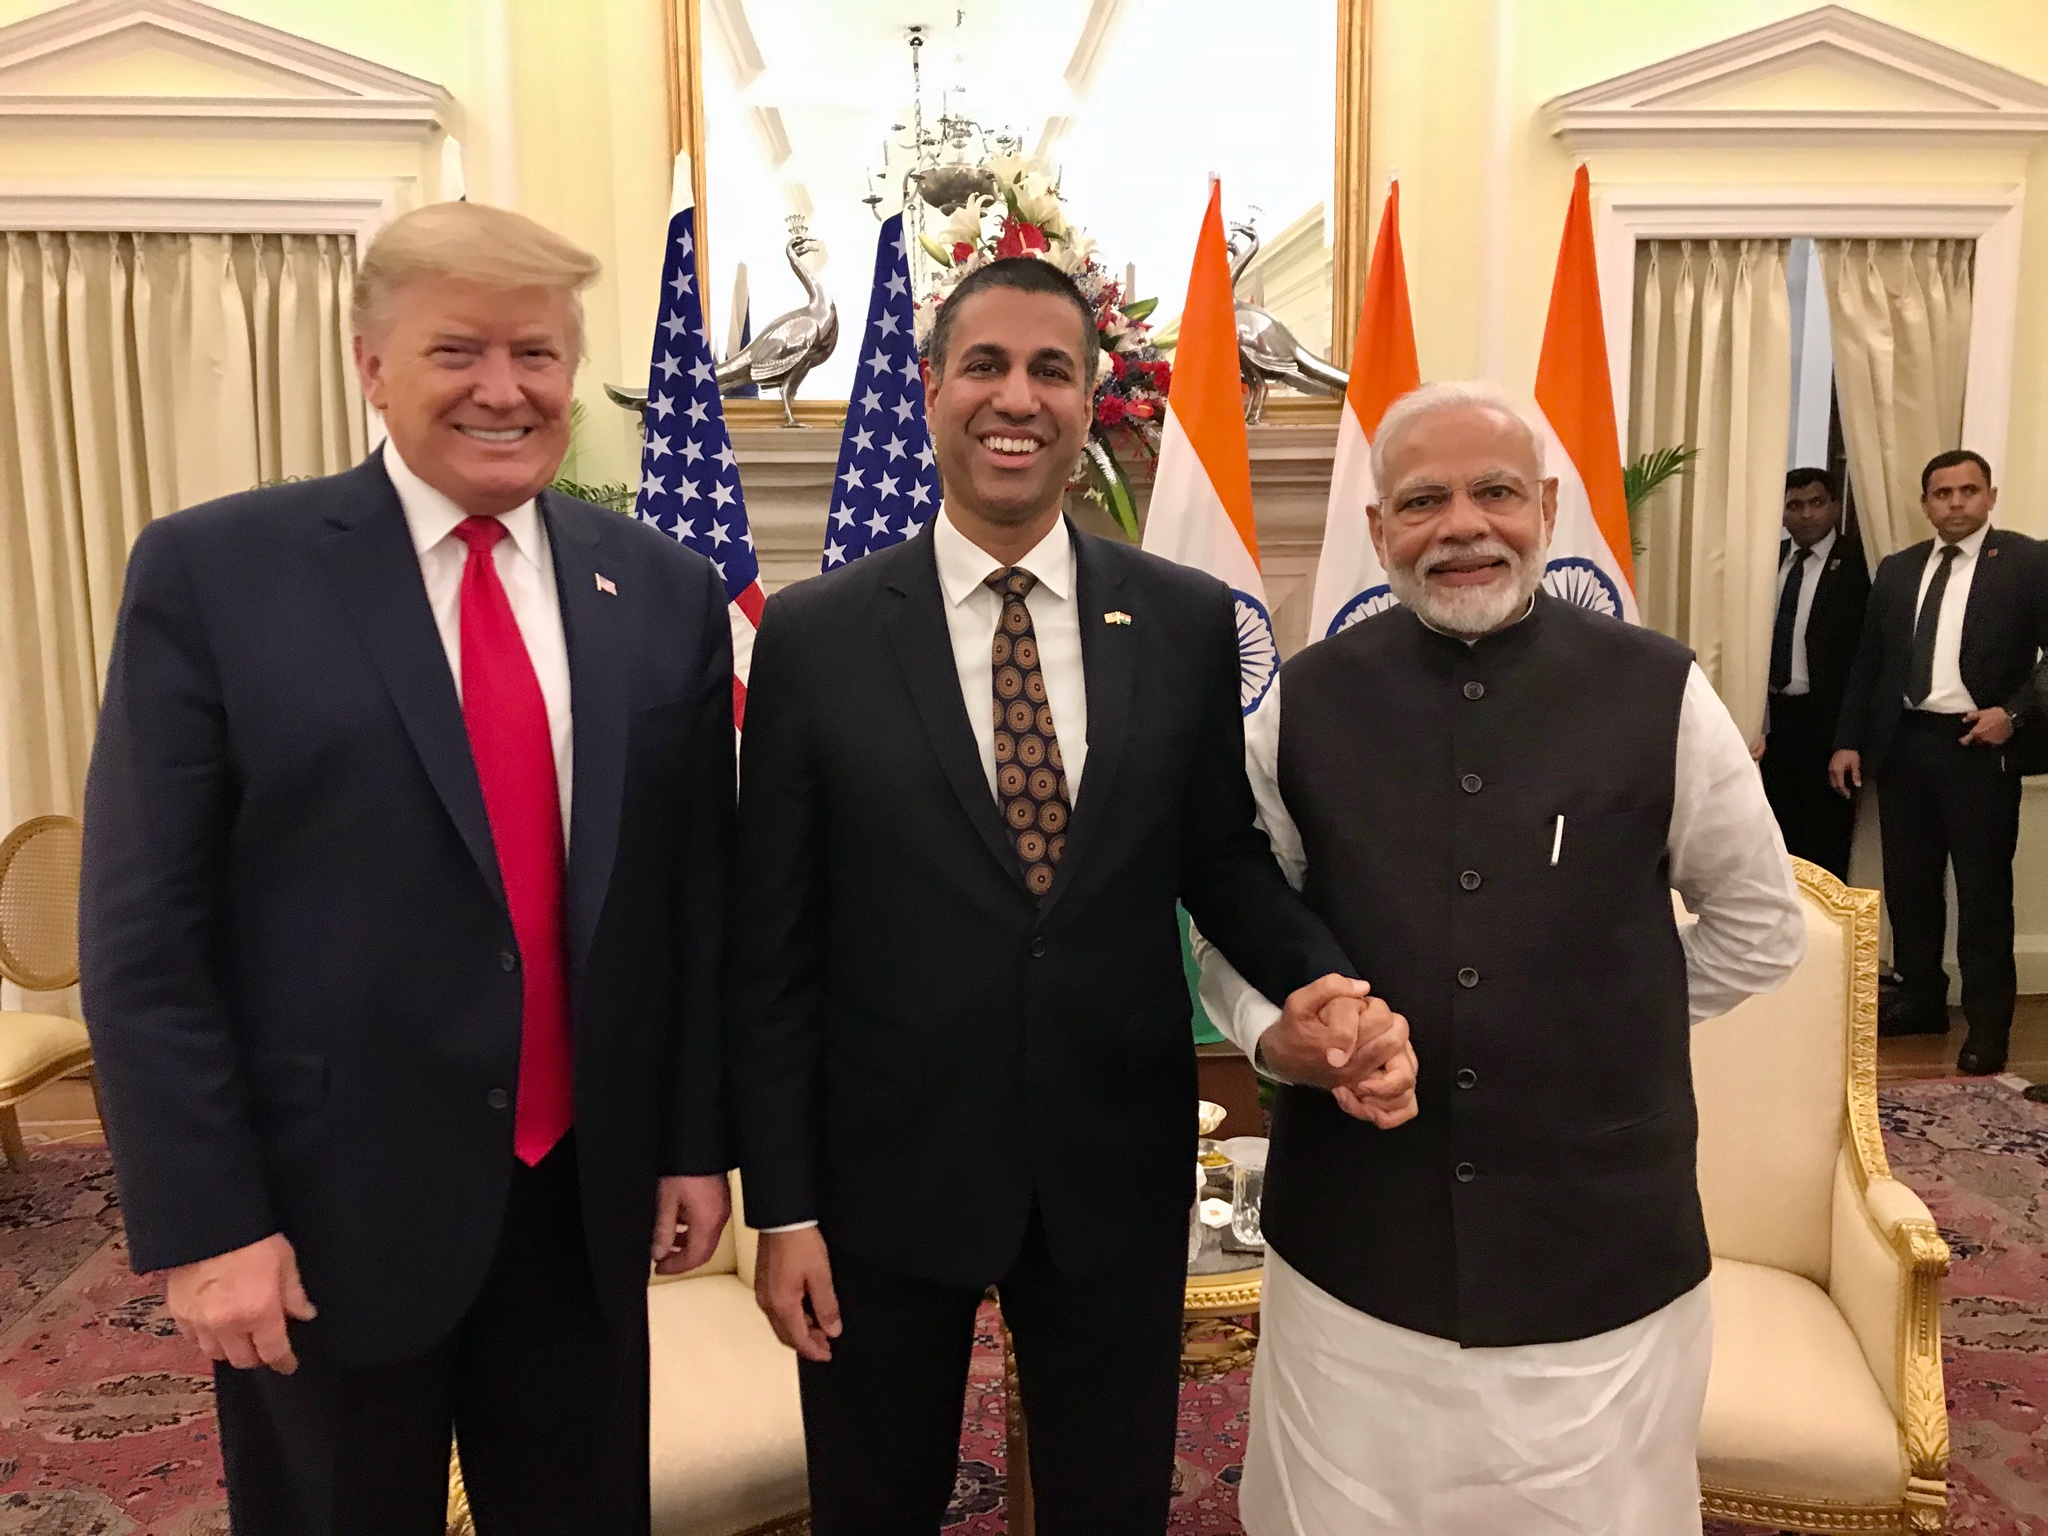 Ajit Pai with US president Donald Trump (L) and Indian prime minister Narendra Modi. (Photo: Twitter)